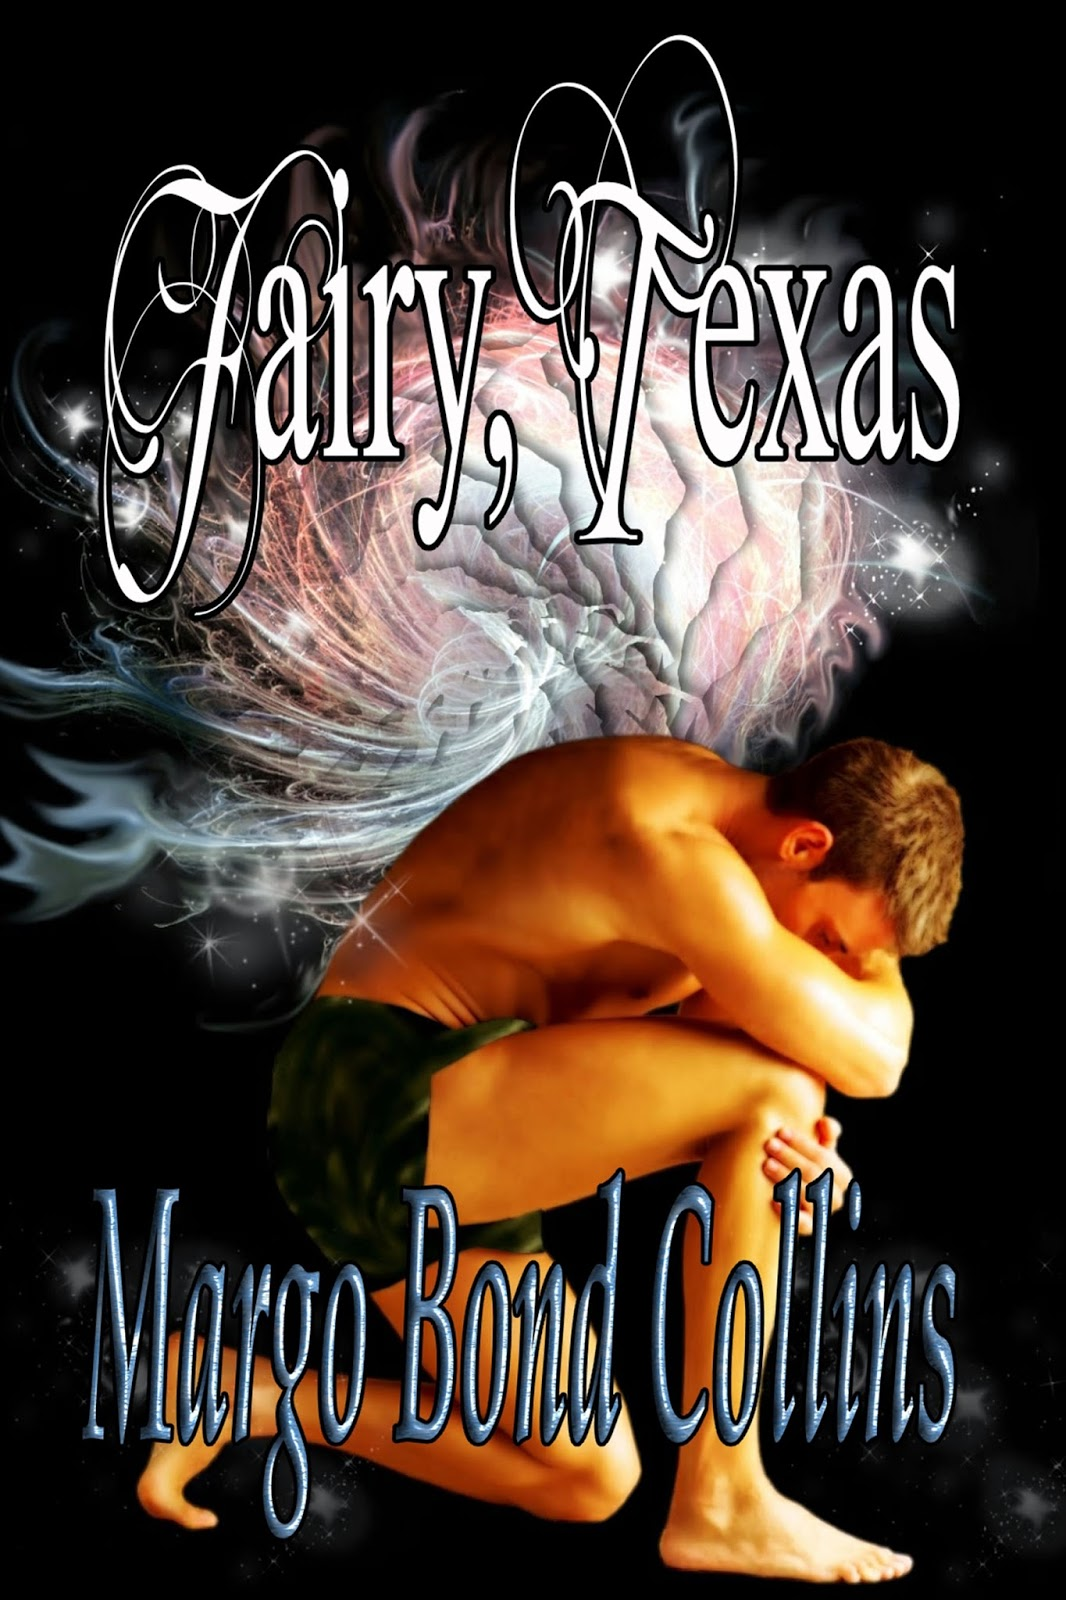 http://www.amazon.com/Fairy-Texas-Margo-Bond-Collins-ebook/dp/B00I7BTMJ4/ref=la_B00EOU9DEG_1_1?s=books&ie=UTF8&qid=1393830632&sr=1-1